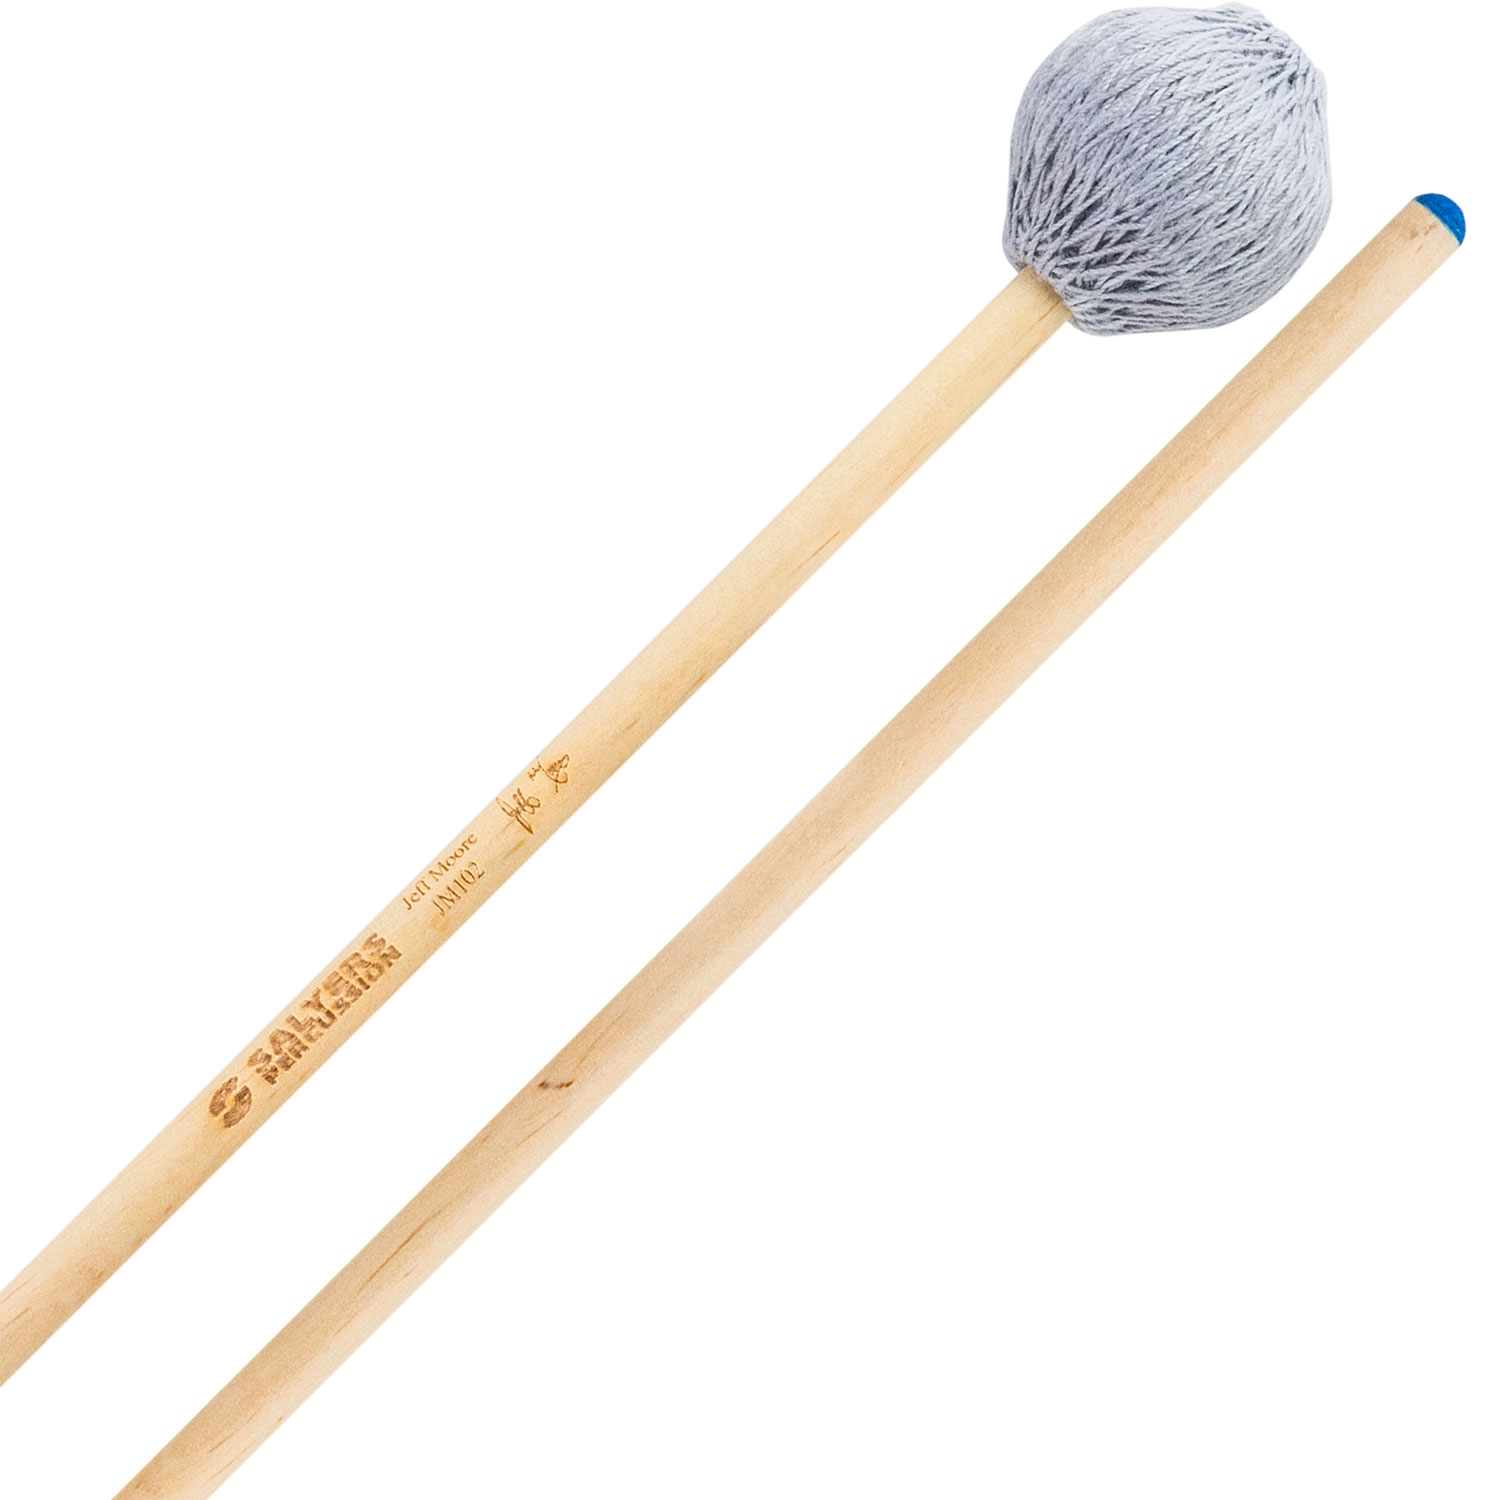 Salyers Percussion Jeff Moore Signature Medium Soft Marimba Mallets with Birch Handles